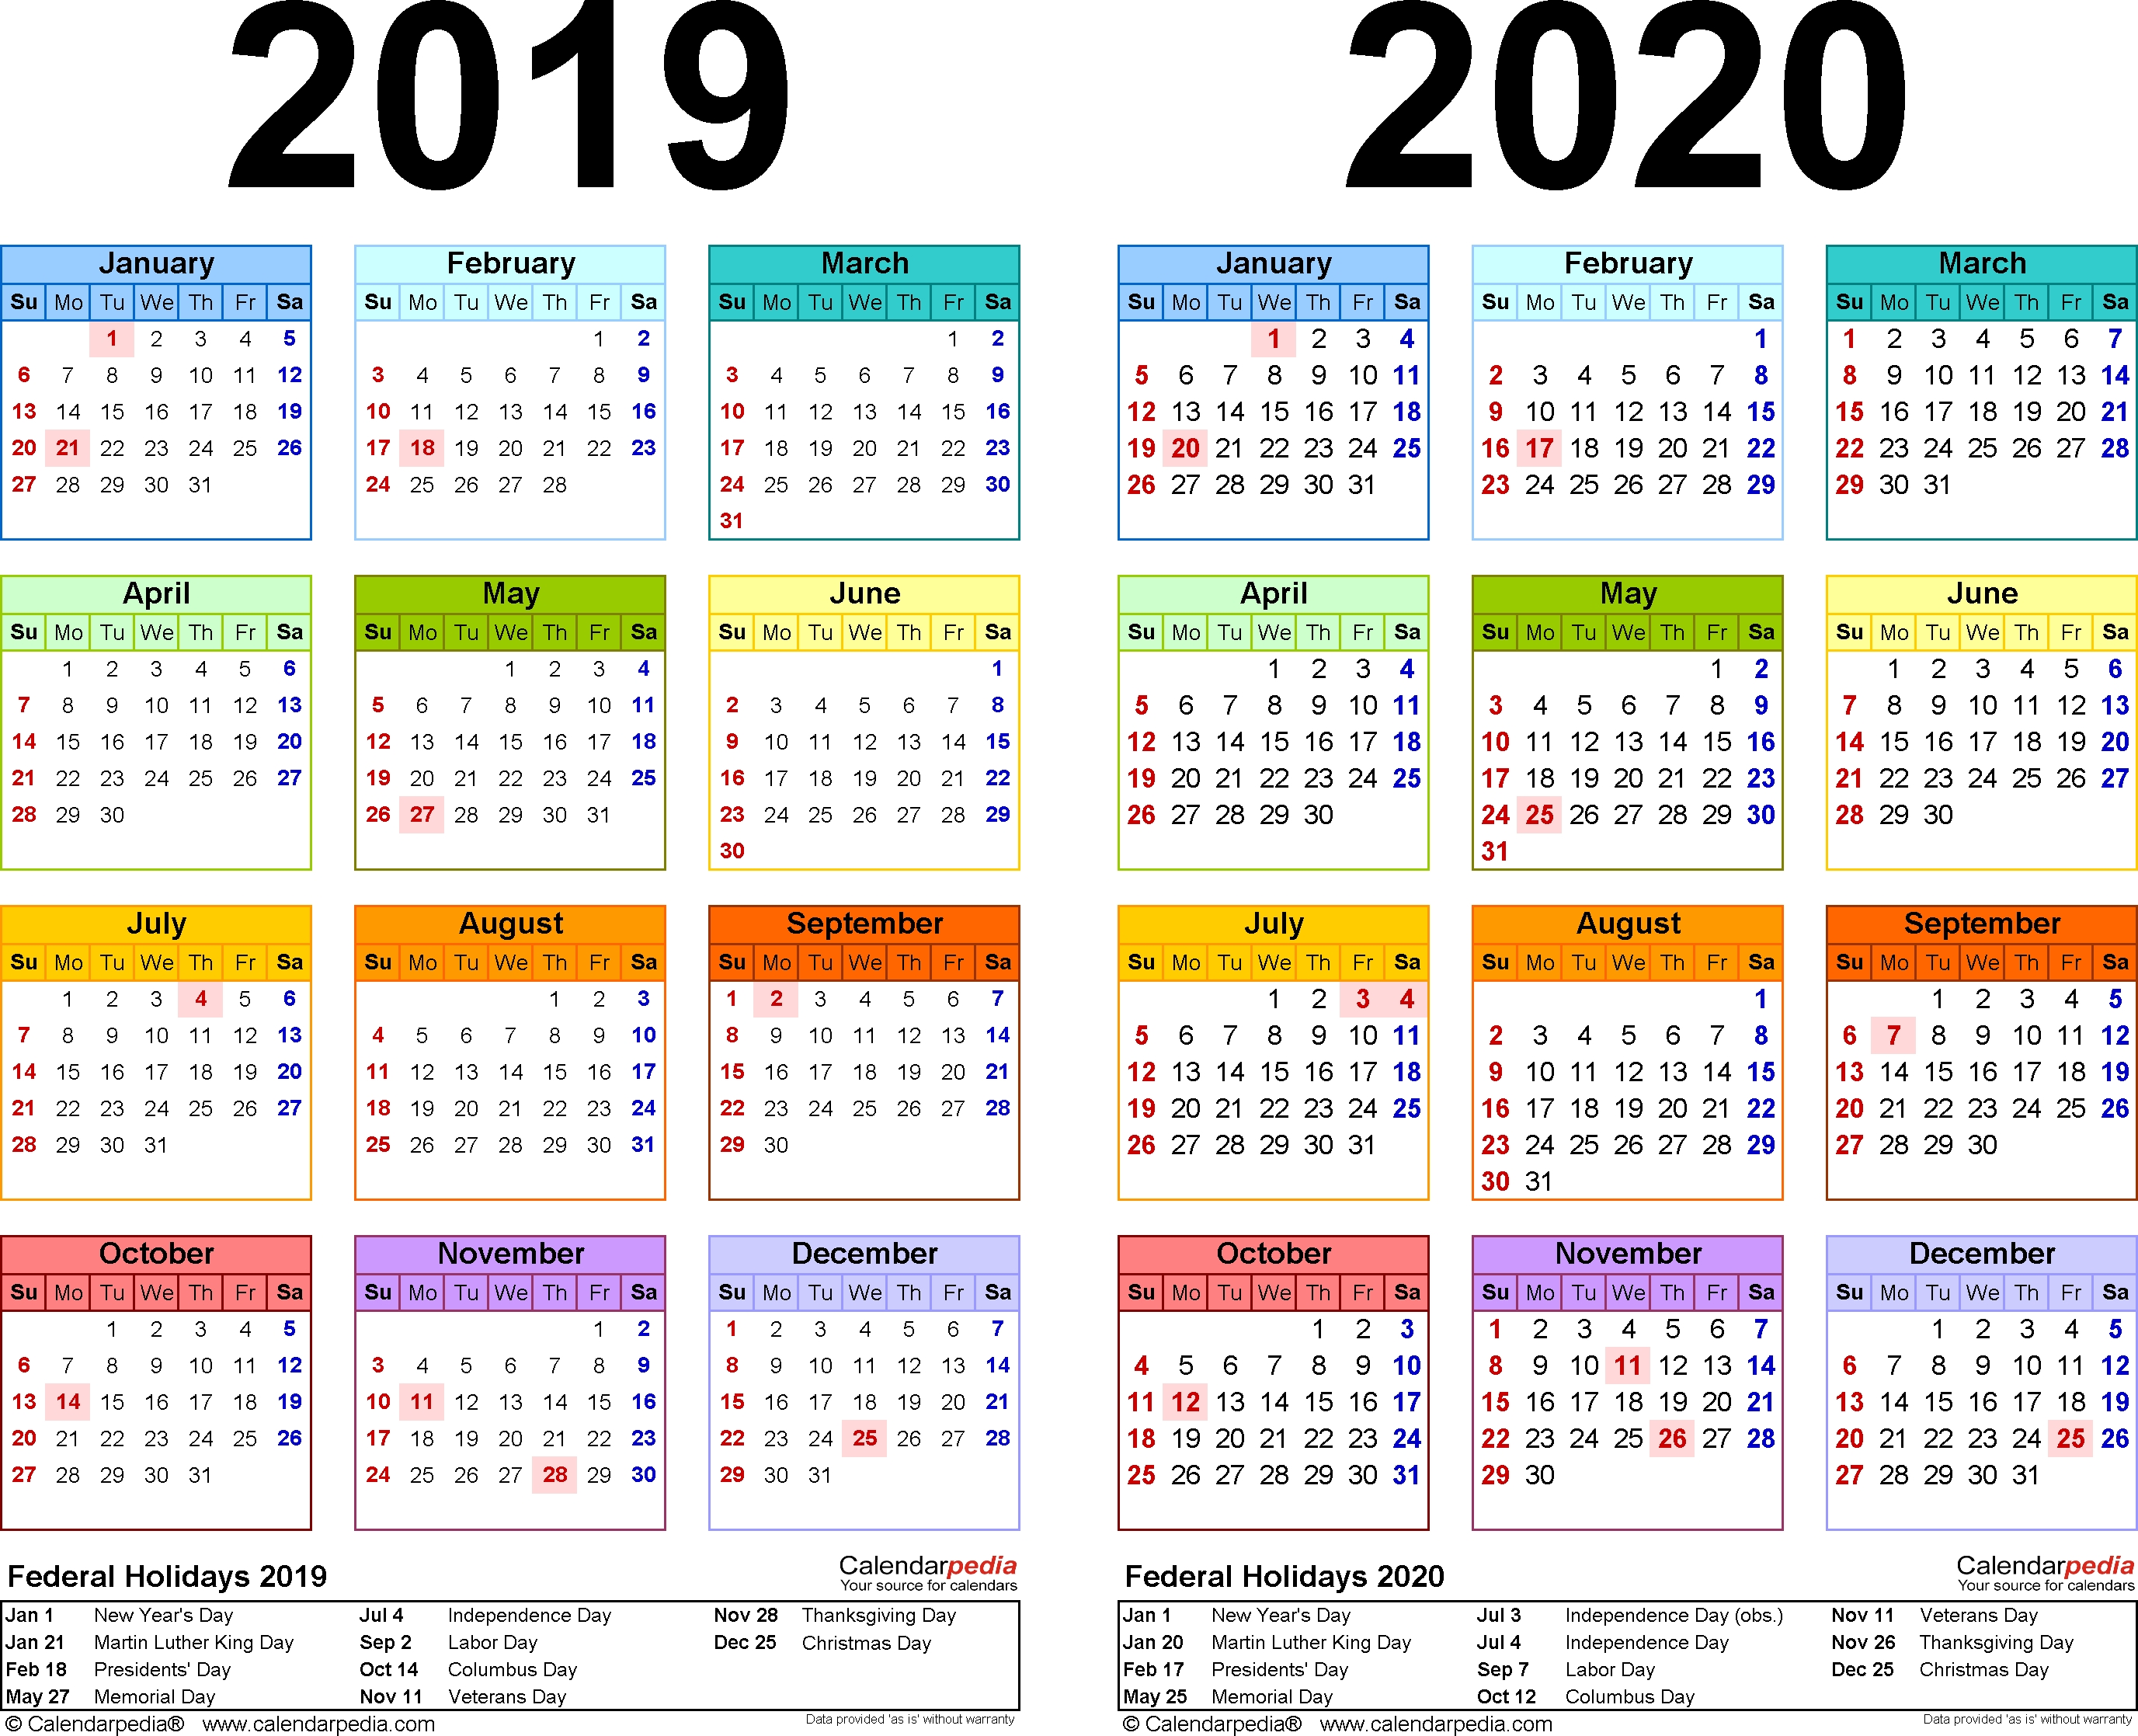 2019-2020 Calendar - Free Printable Two-Year Excel Calendars pertaining to Large Calendar 2019/2020